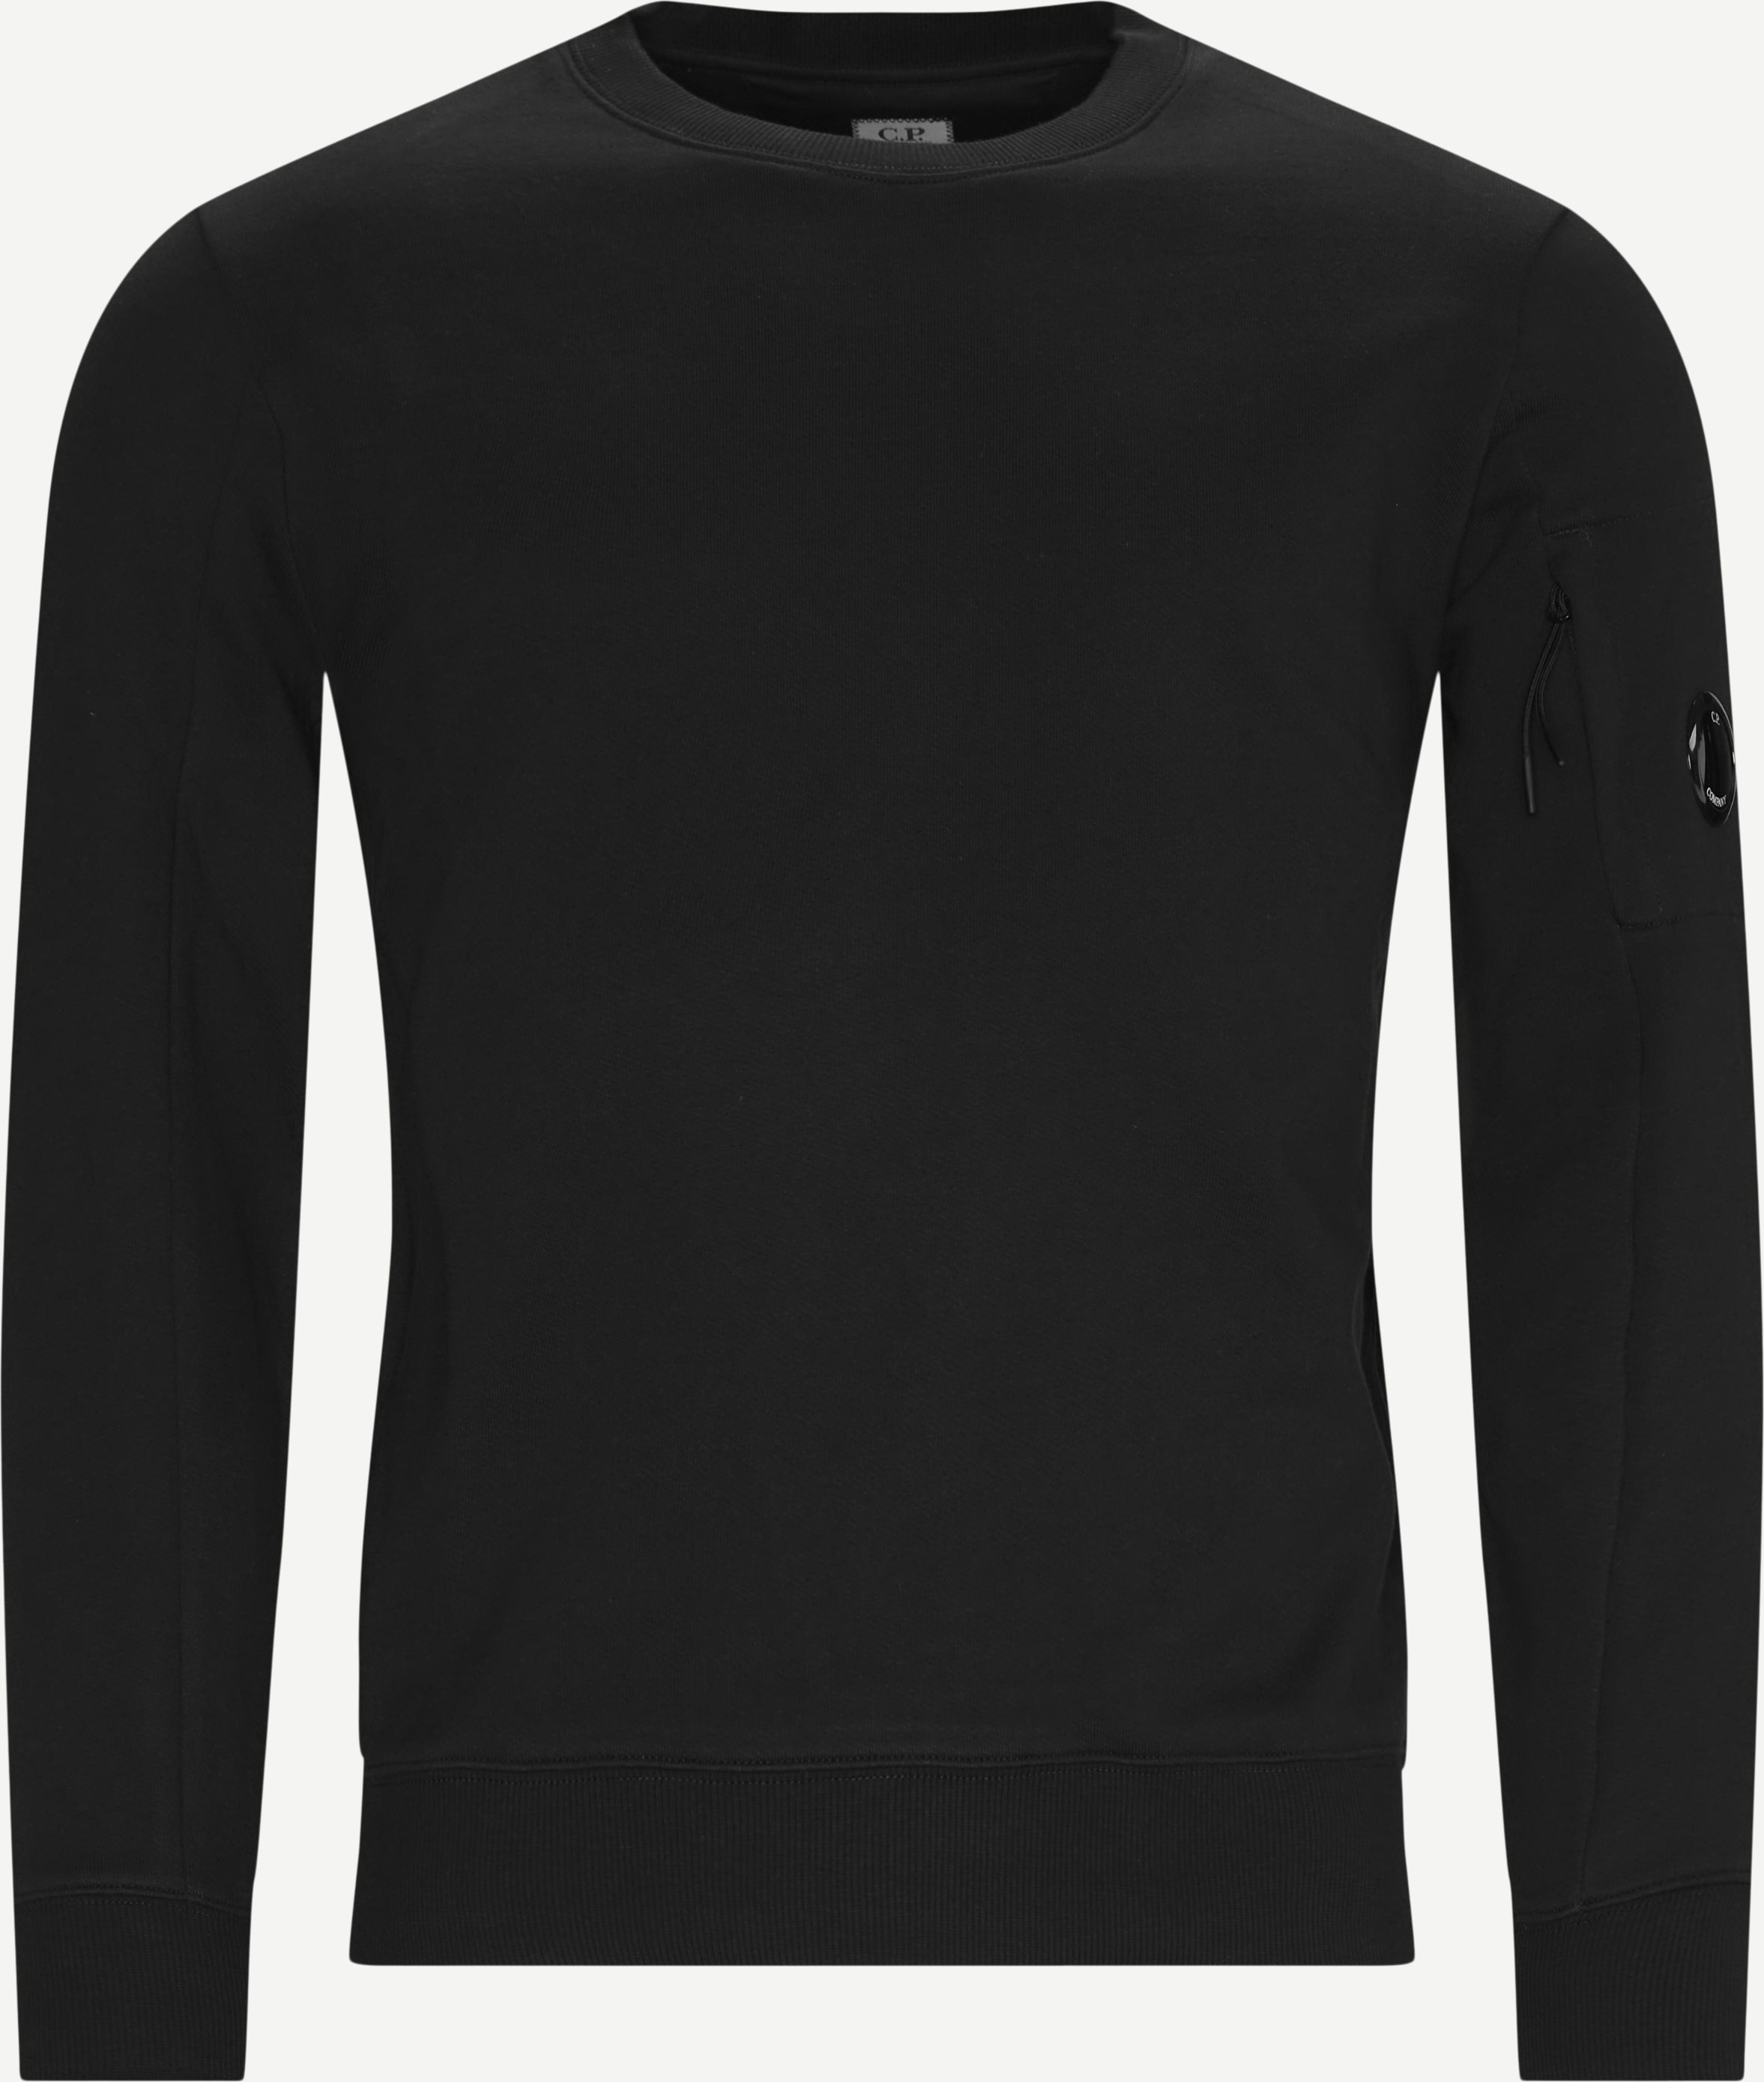 Garment Dyed Light Fleece Lens Crew Sweat - Sweatshirts - Regular - Svart